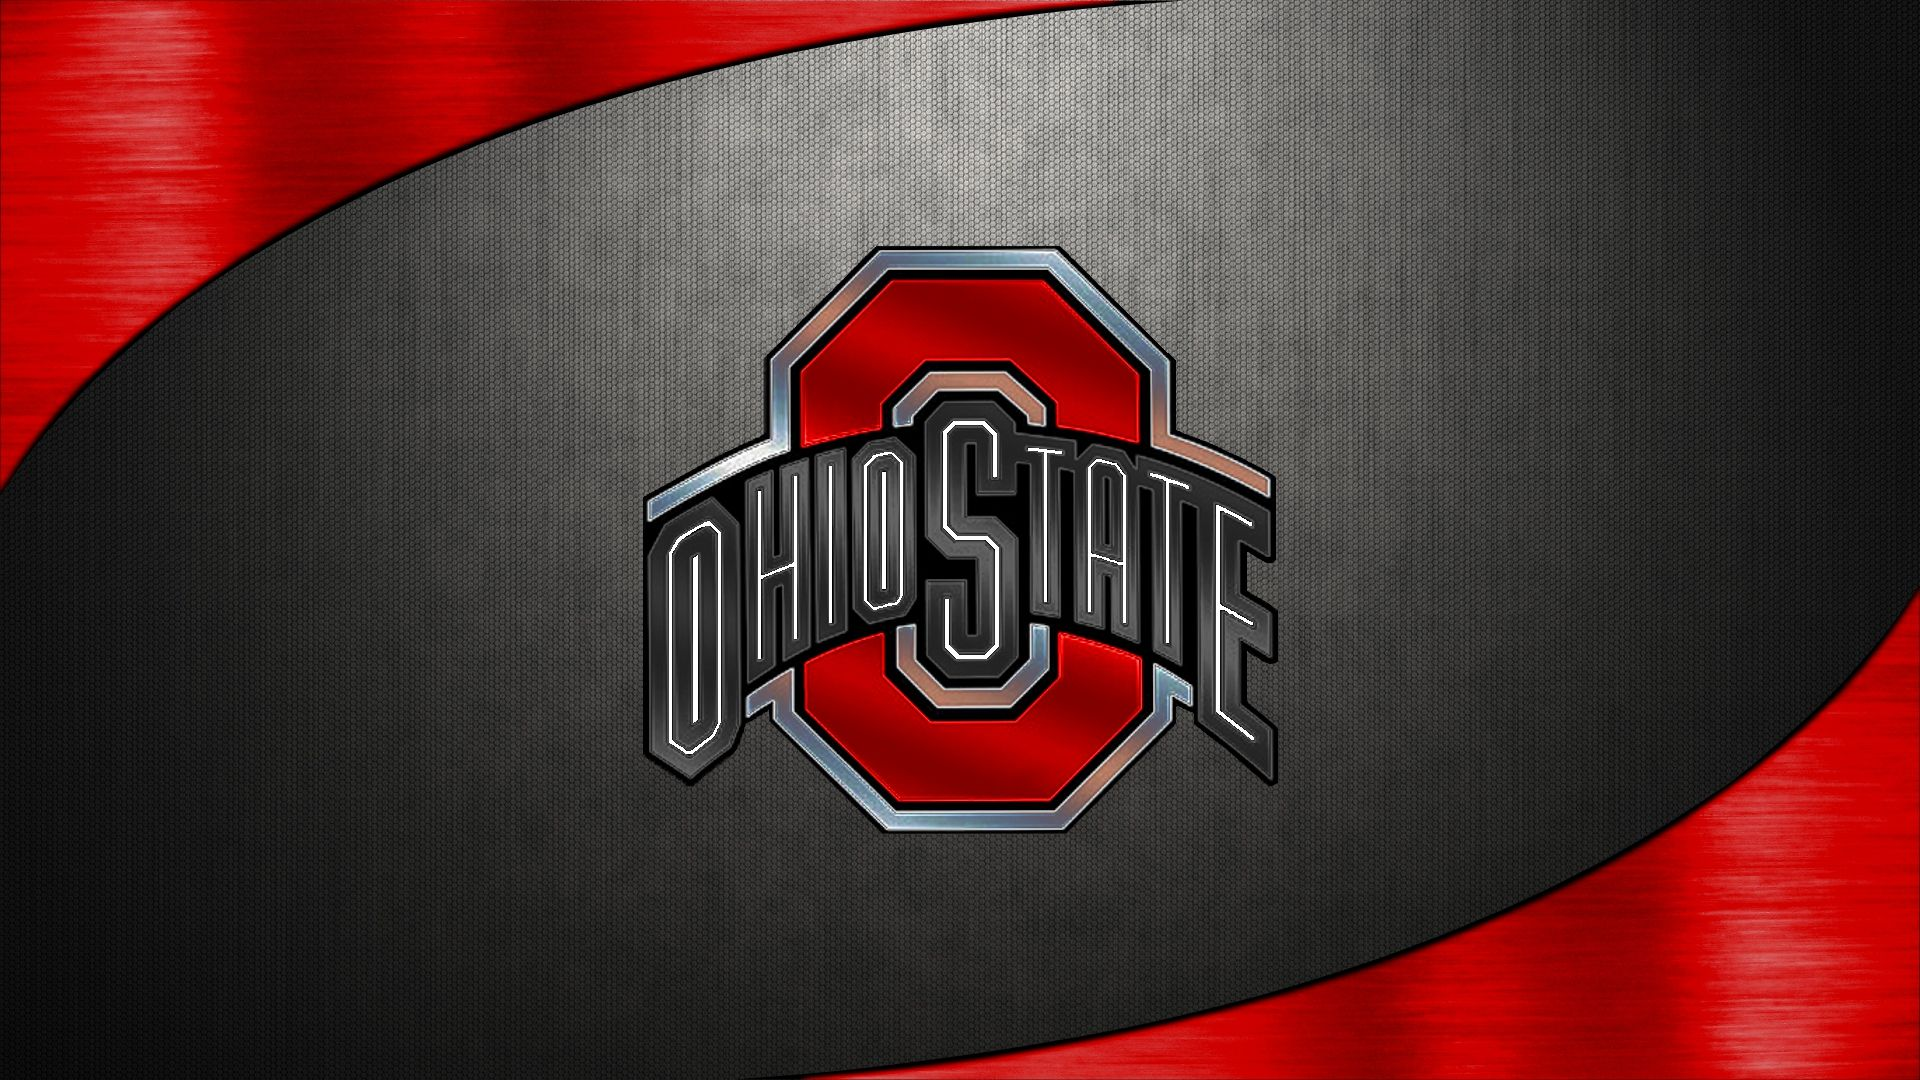 OSU Wallpaper 447